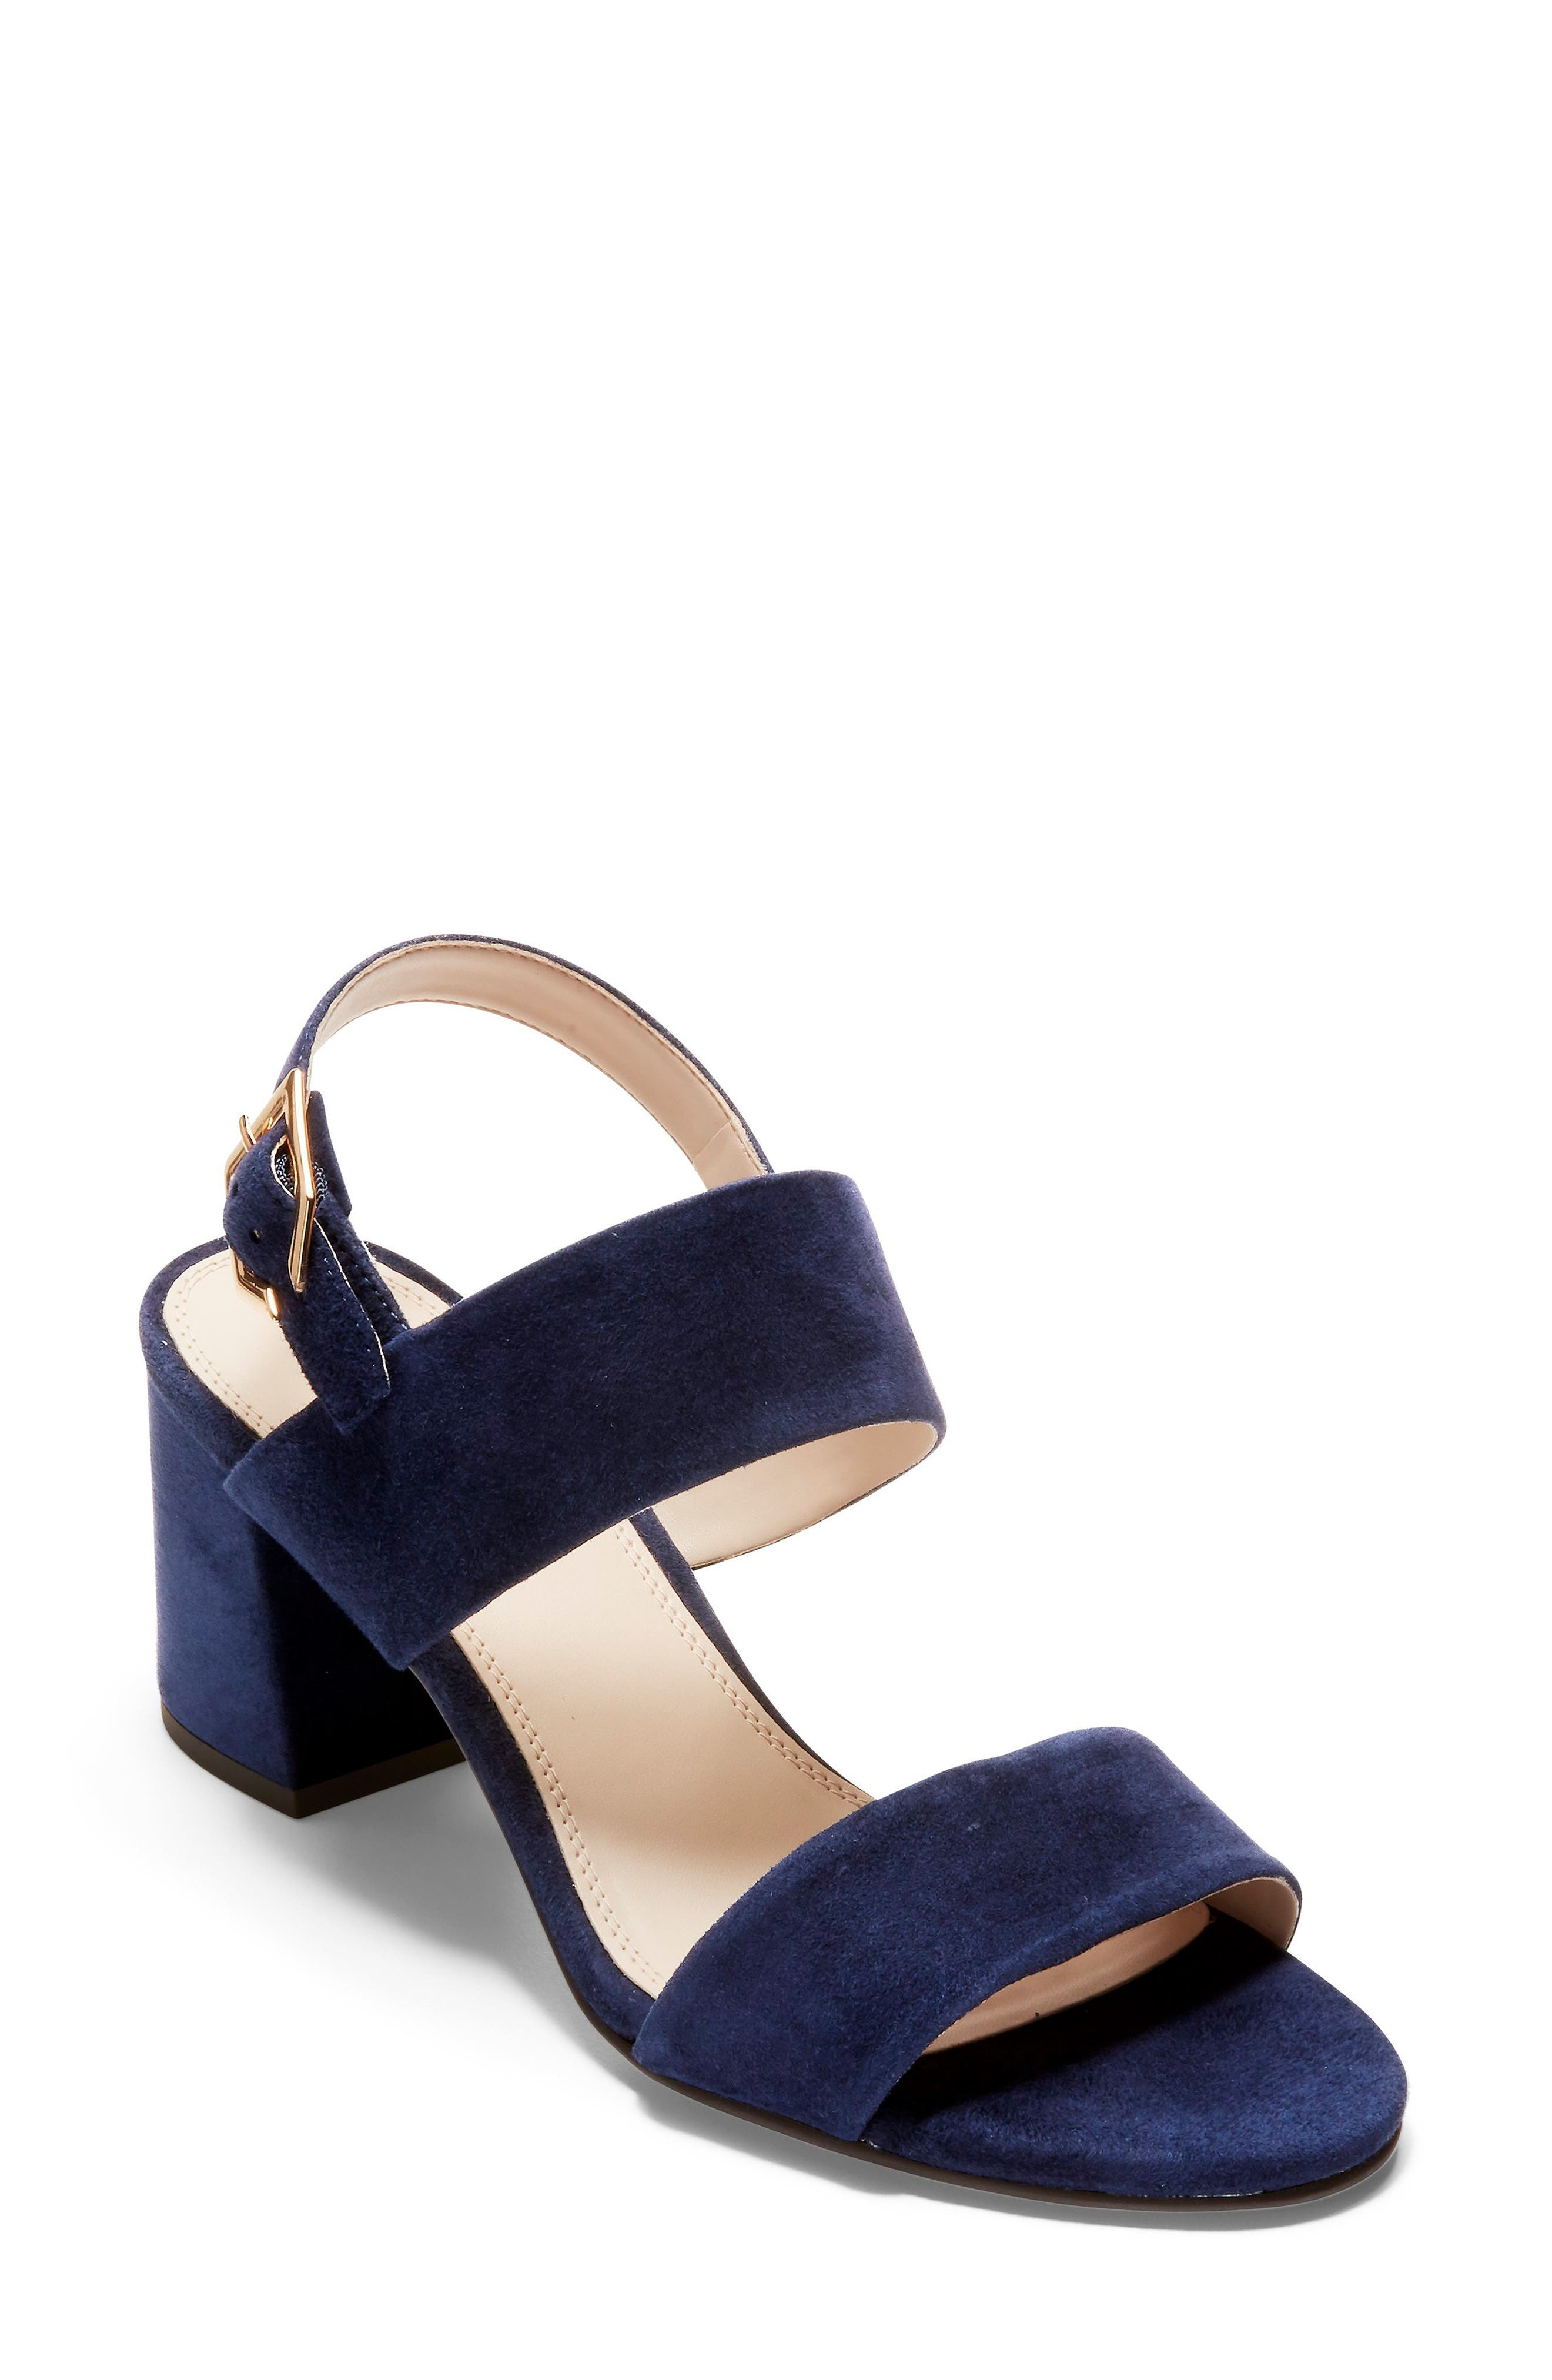 Avani Block Heel Sandal,                         Main,                         color, MARINE BLUE SUEDE